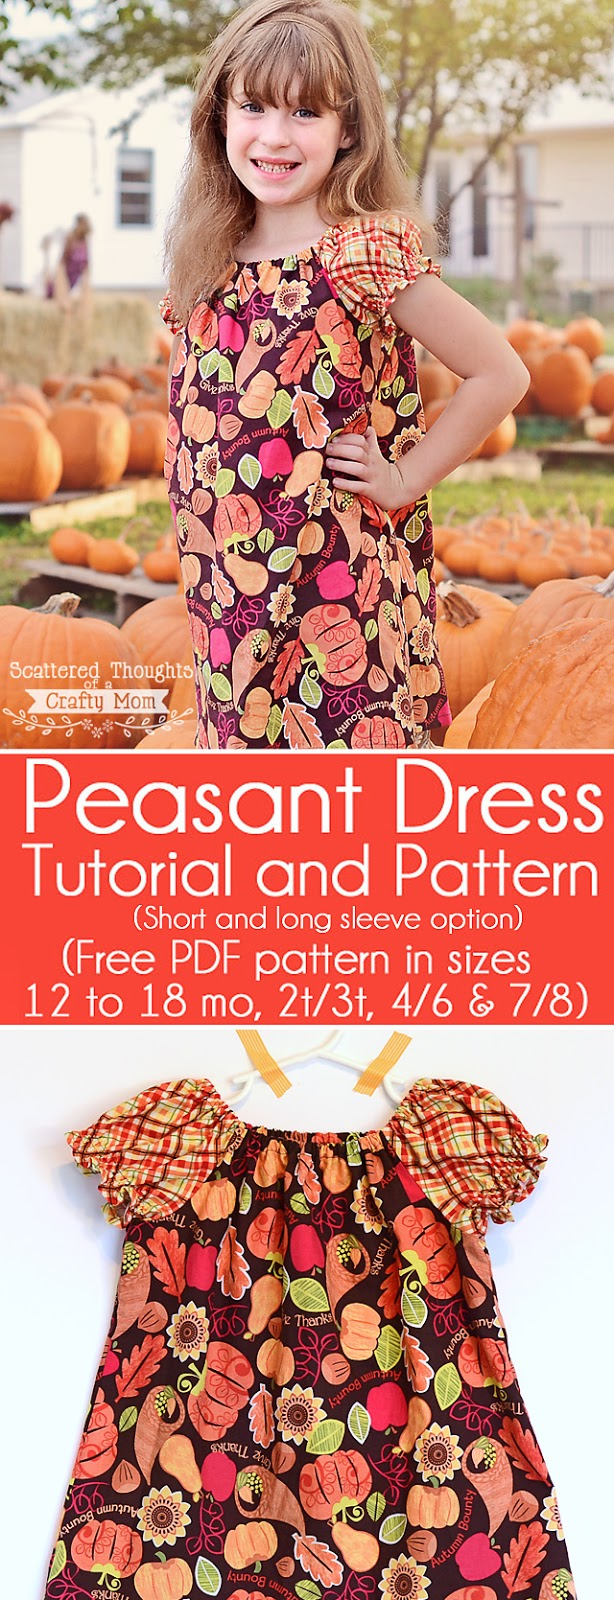 Free Peasant Dress Pattern and tutorial in sizes 12 months to 8. (Printable pdf pattern)